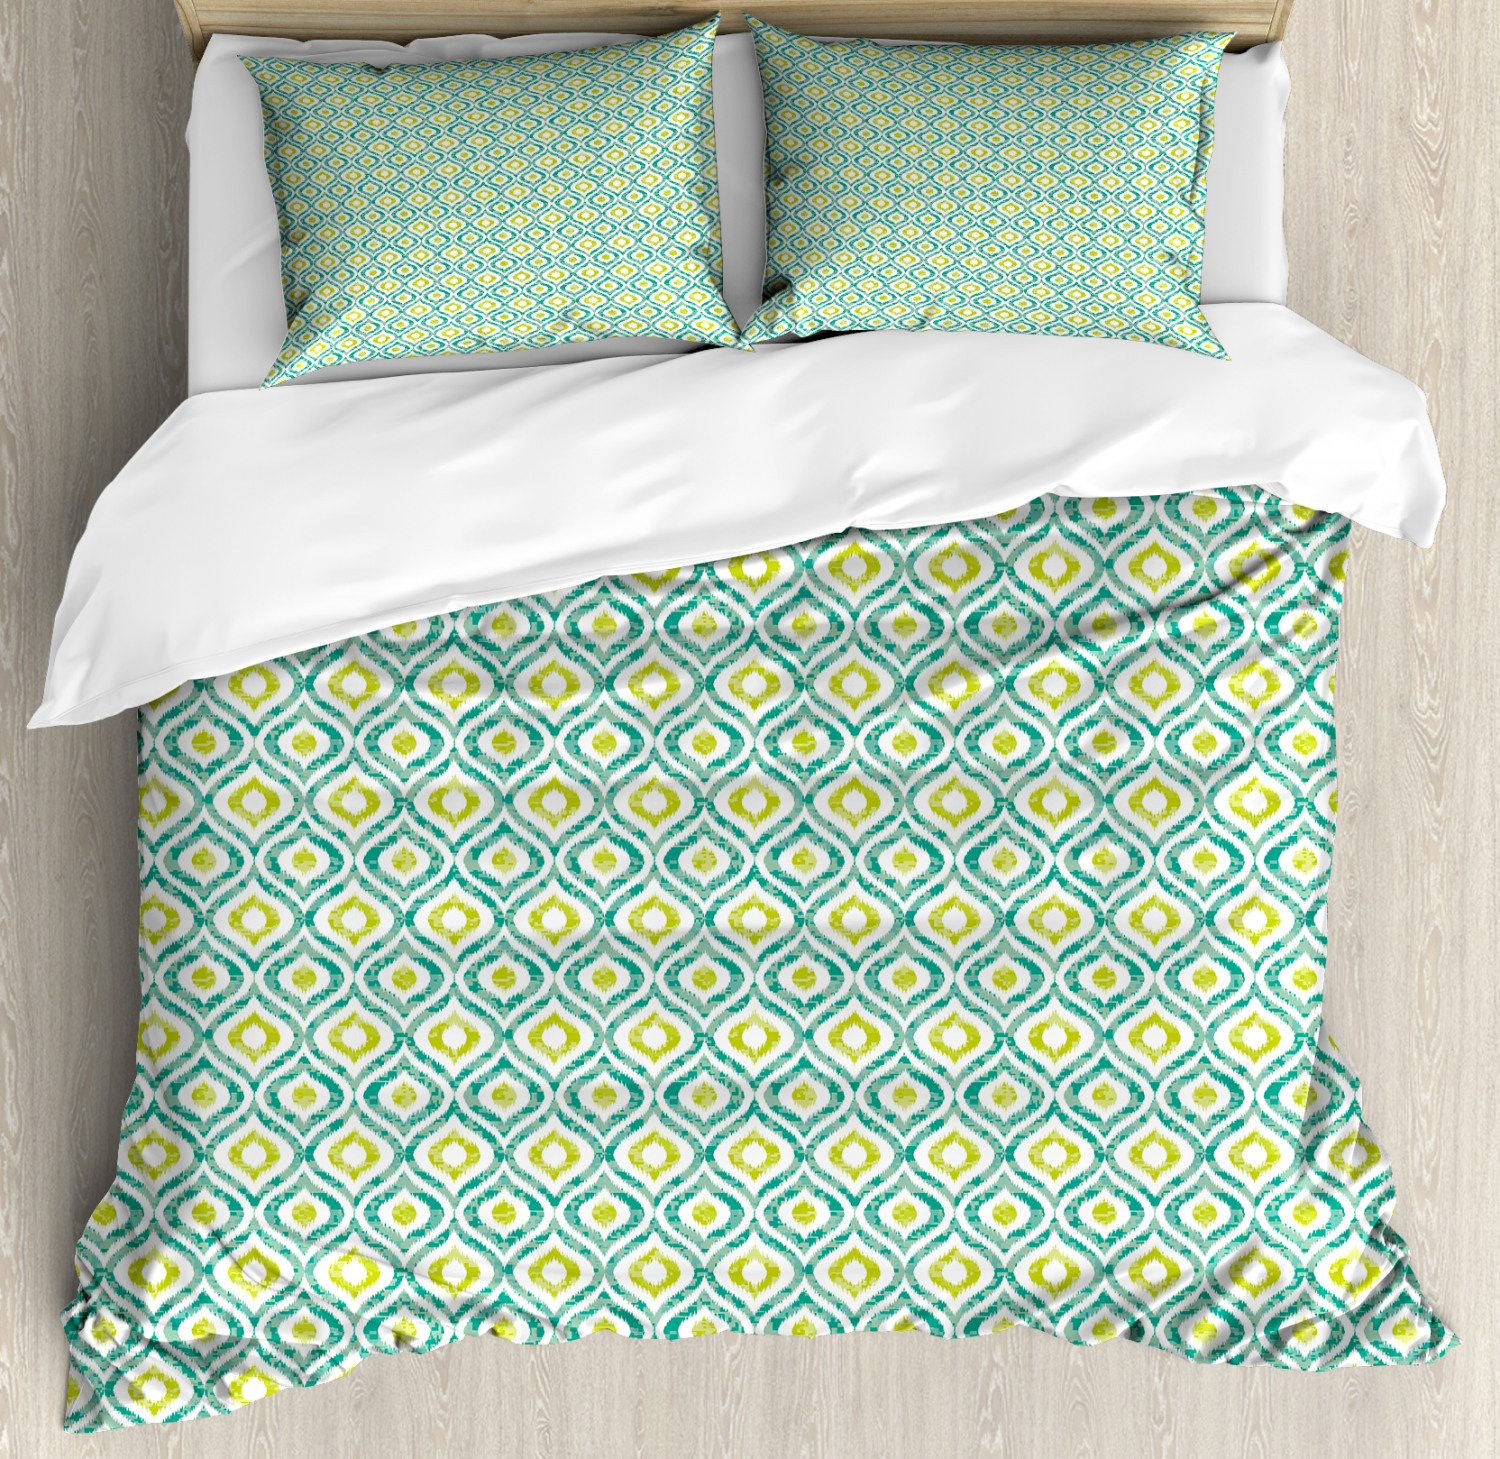 Ikat Duvet Cover Set with Pillow Shams Vibrant Asian Ogee Motif Print